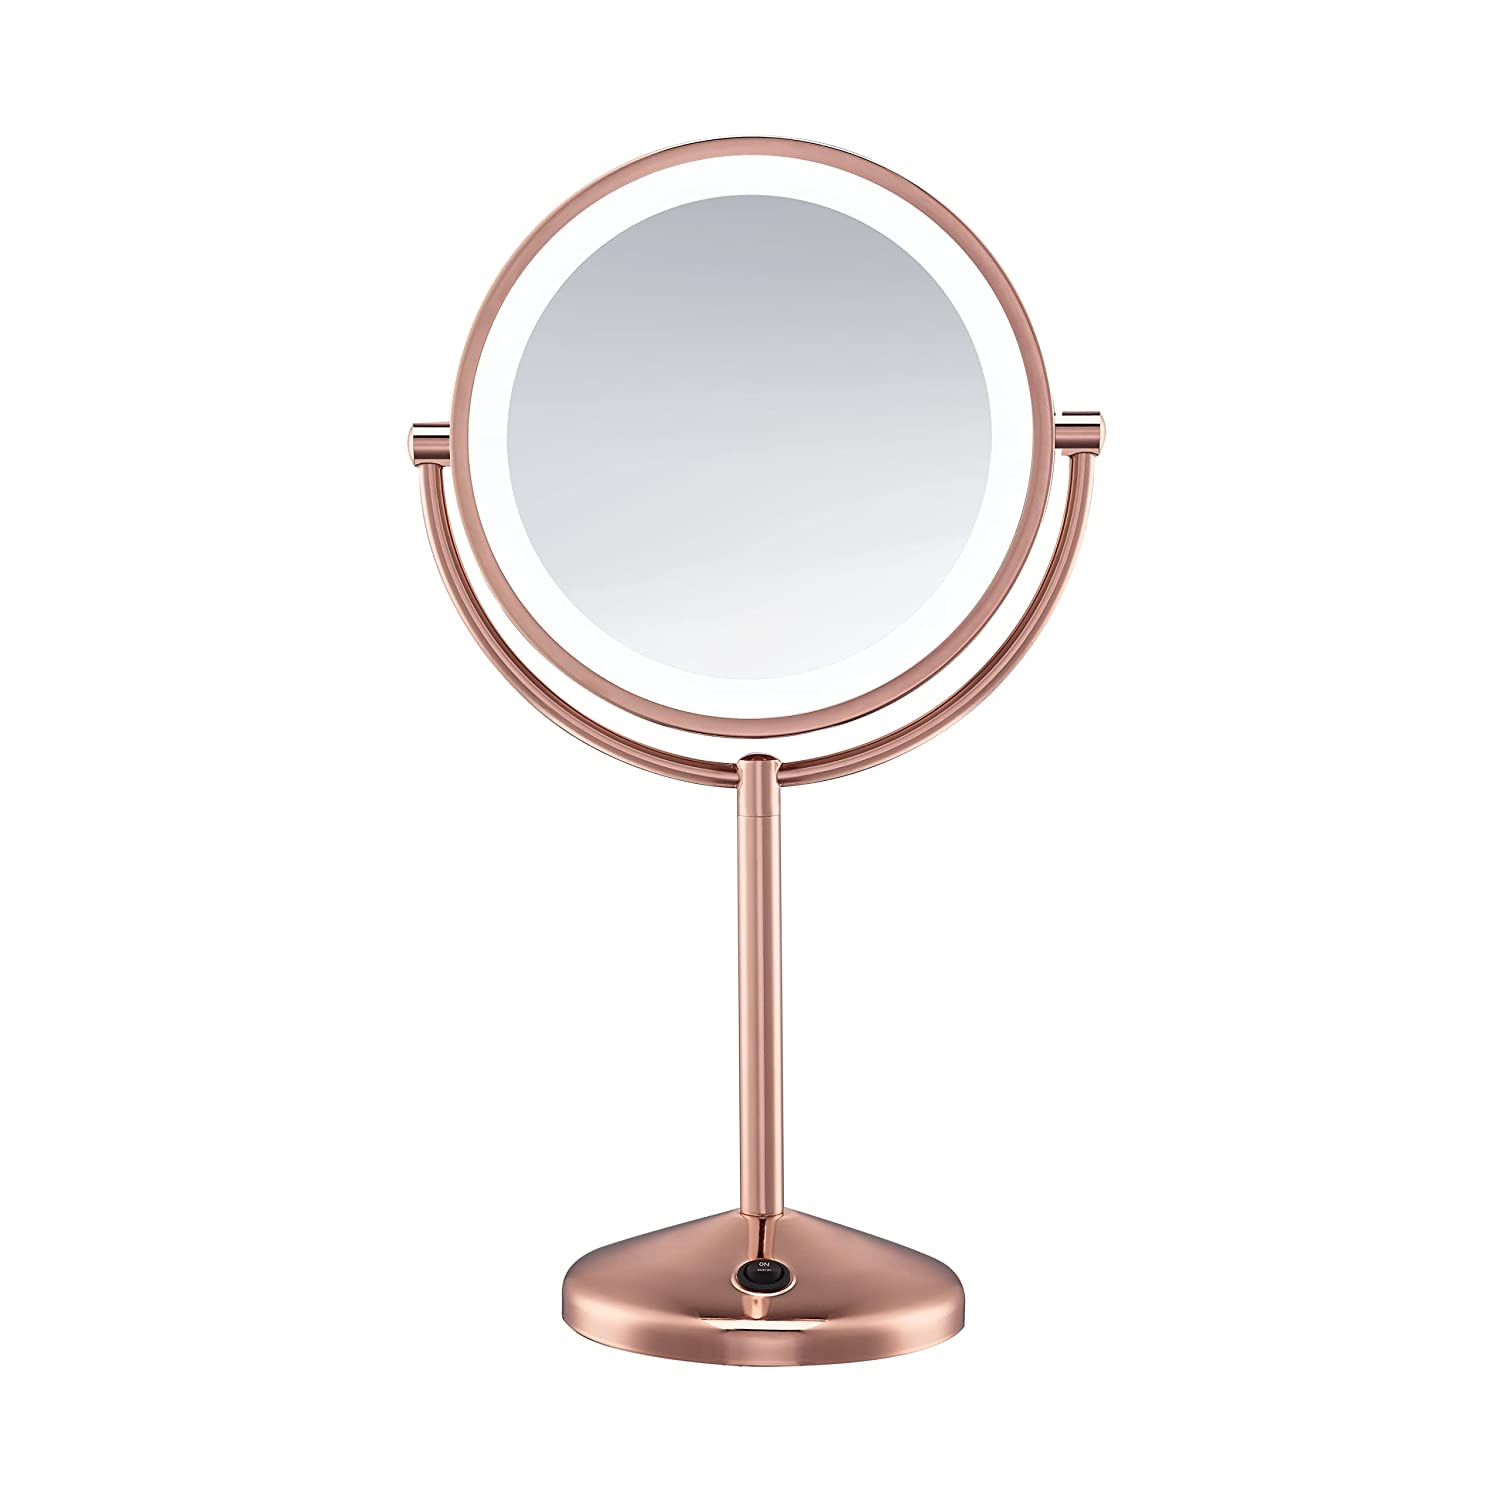 Conair Reflections Double-Sided LED Lighted Vanity Makeup Mirror